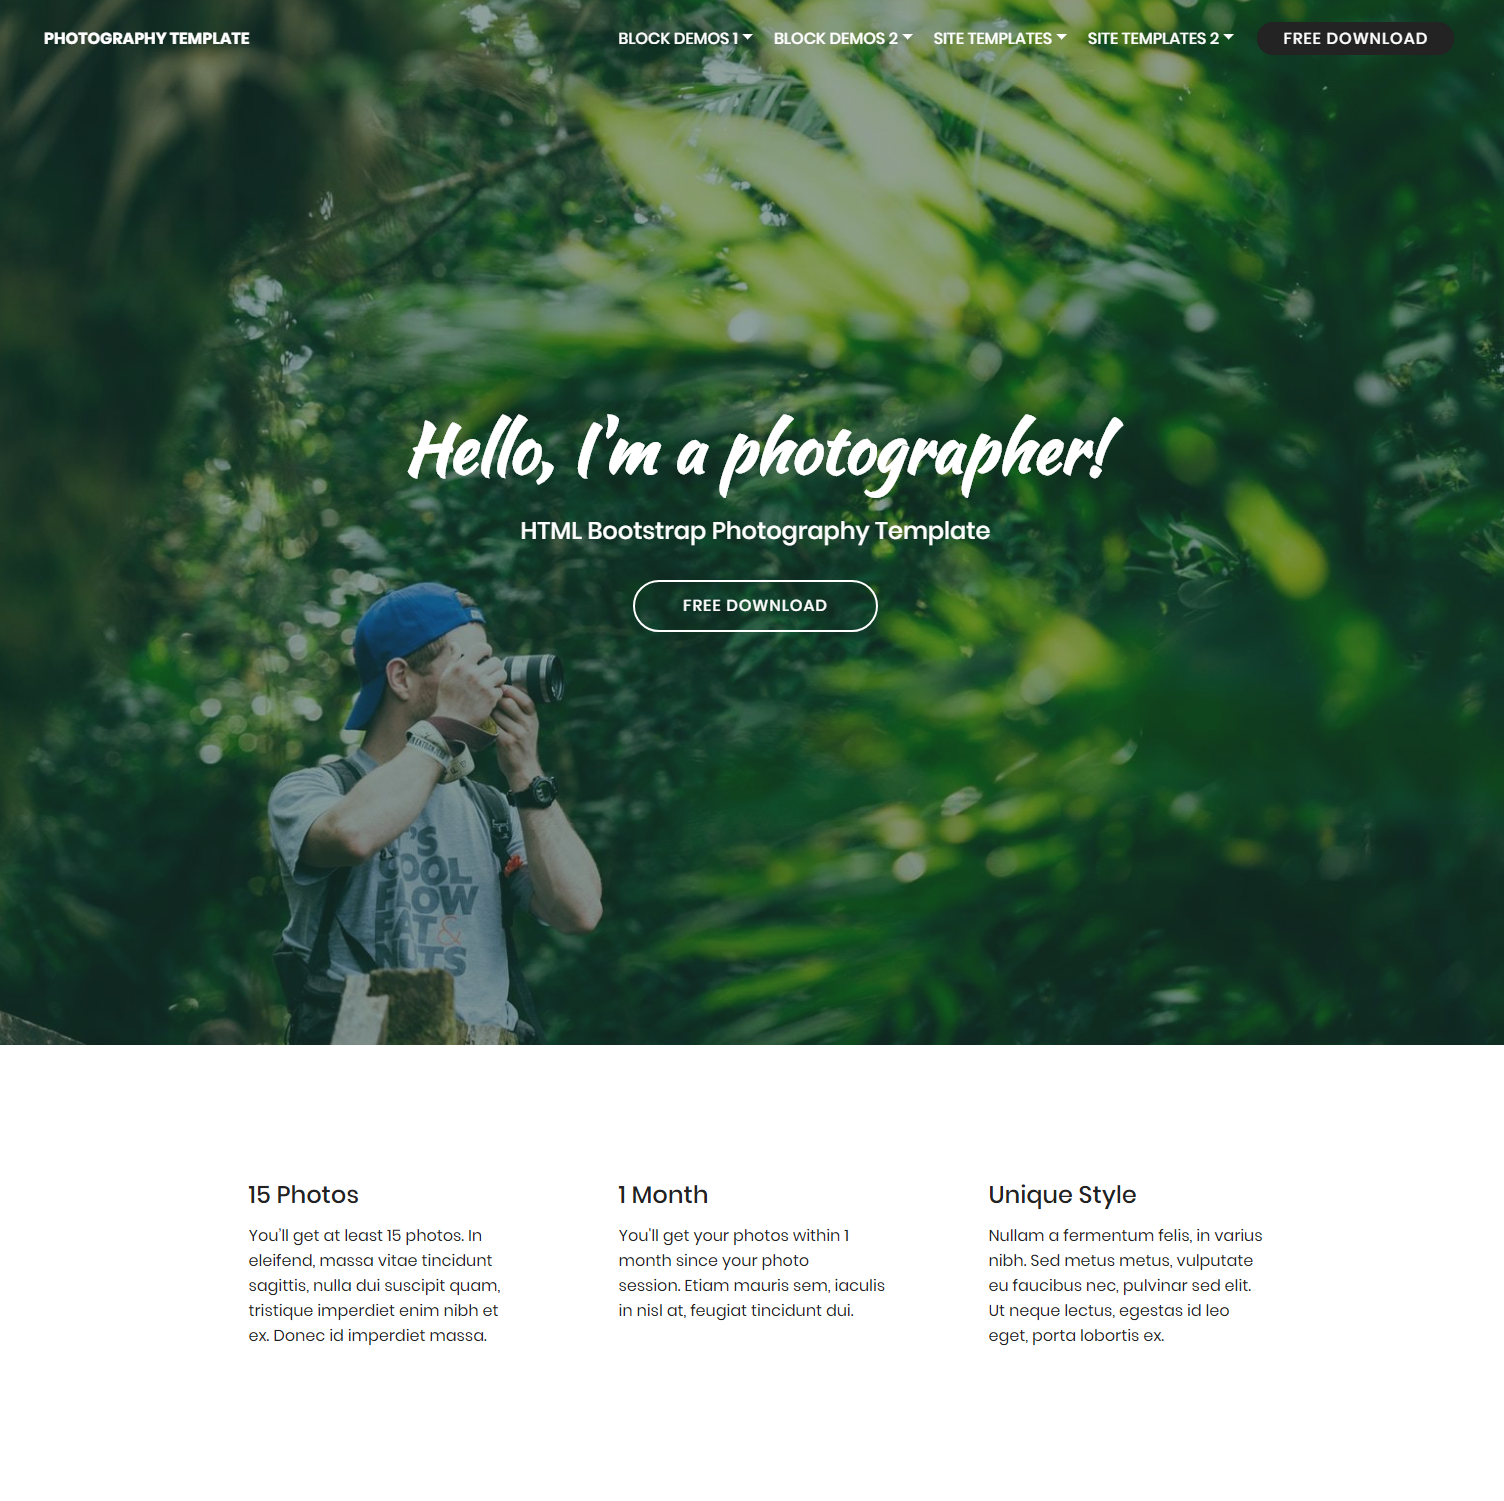 Free Bootstrap Photography Templates